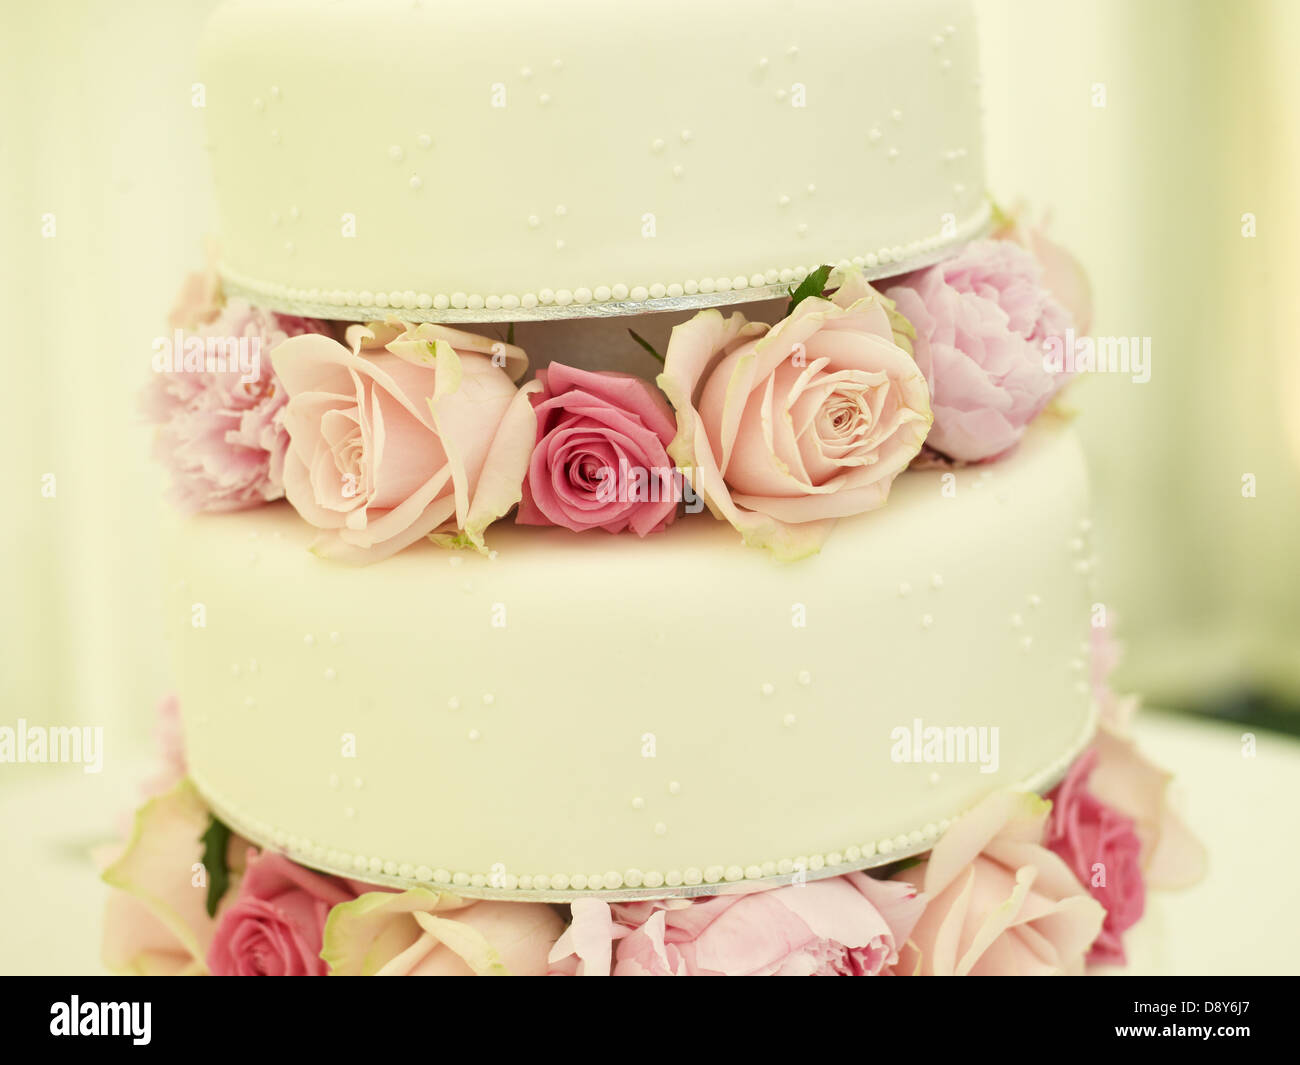 Three Tier Cake Stock Photos & Three Tier Cake Stock Images - Alamy